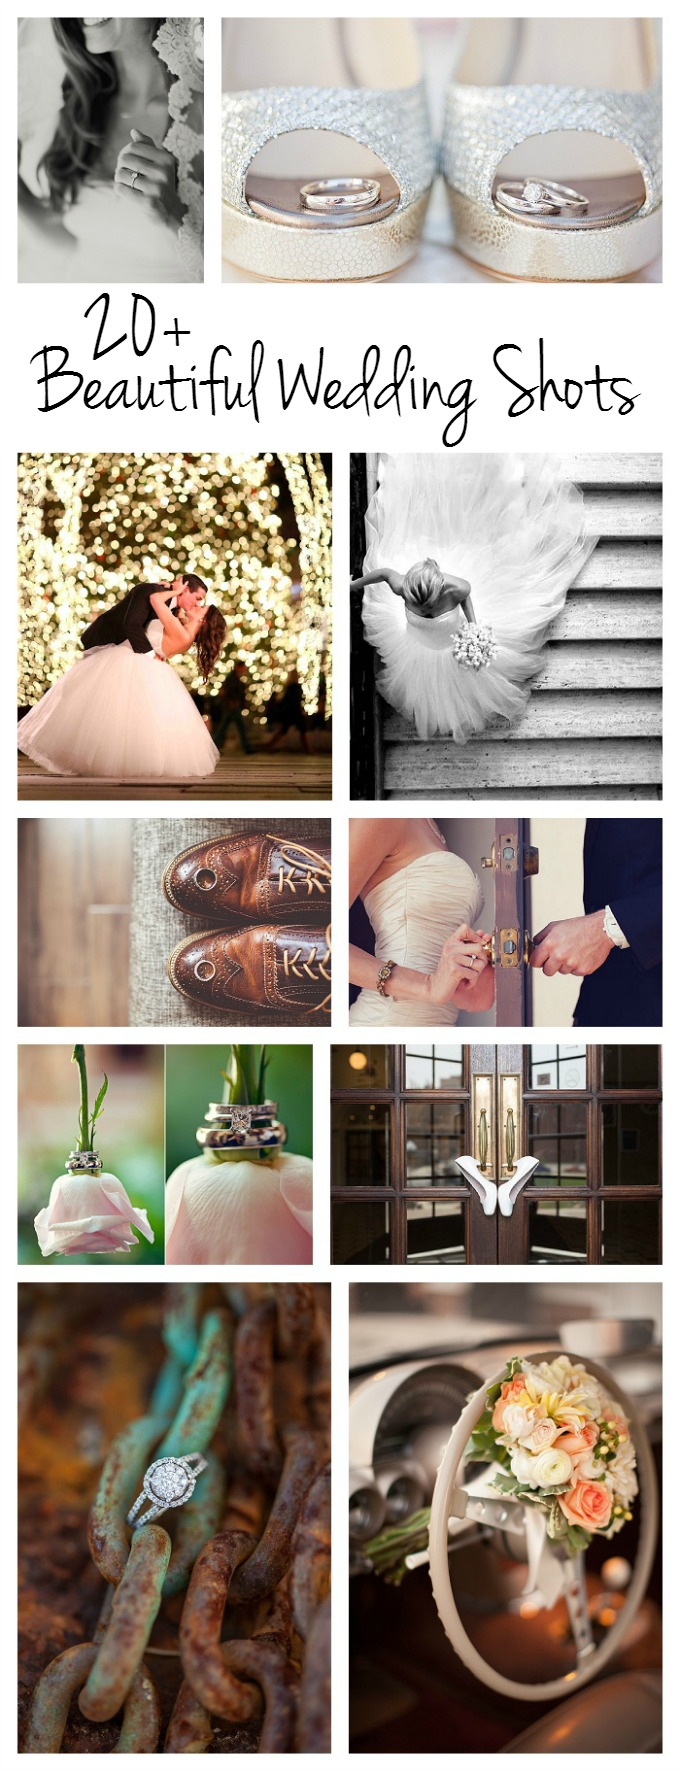 20-Beautiful-Wedding-Shots